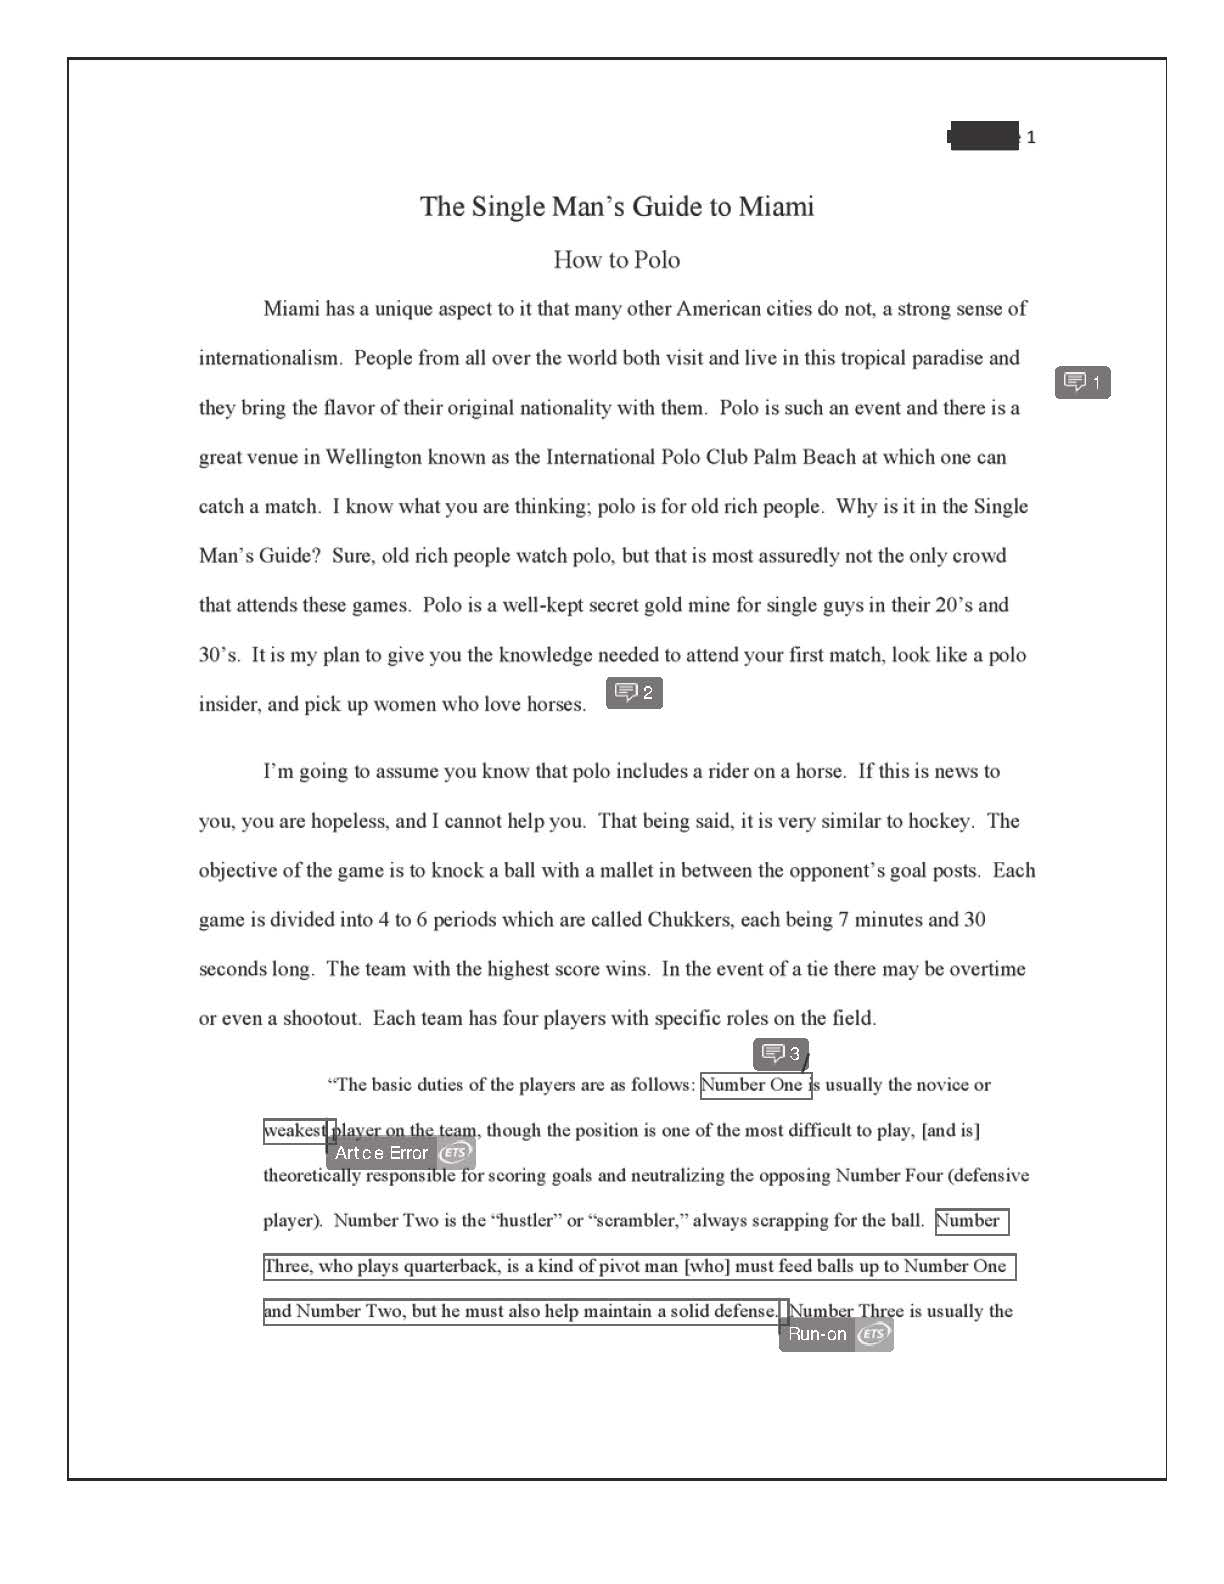 005 Informative Essay Topics Essays Sample Funny Argumentative For Middle School Final How To Polo Redacted P College Students Hilarious Good Remarkable Prompt 4th Grade Prompts High Expository Full